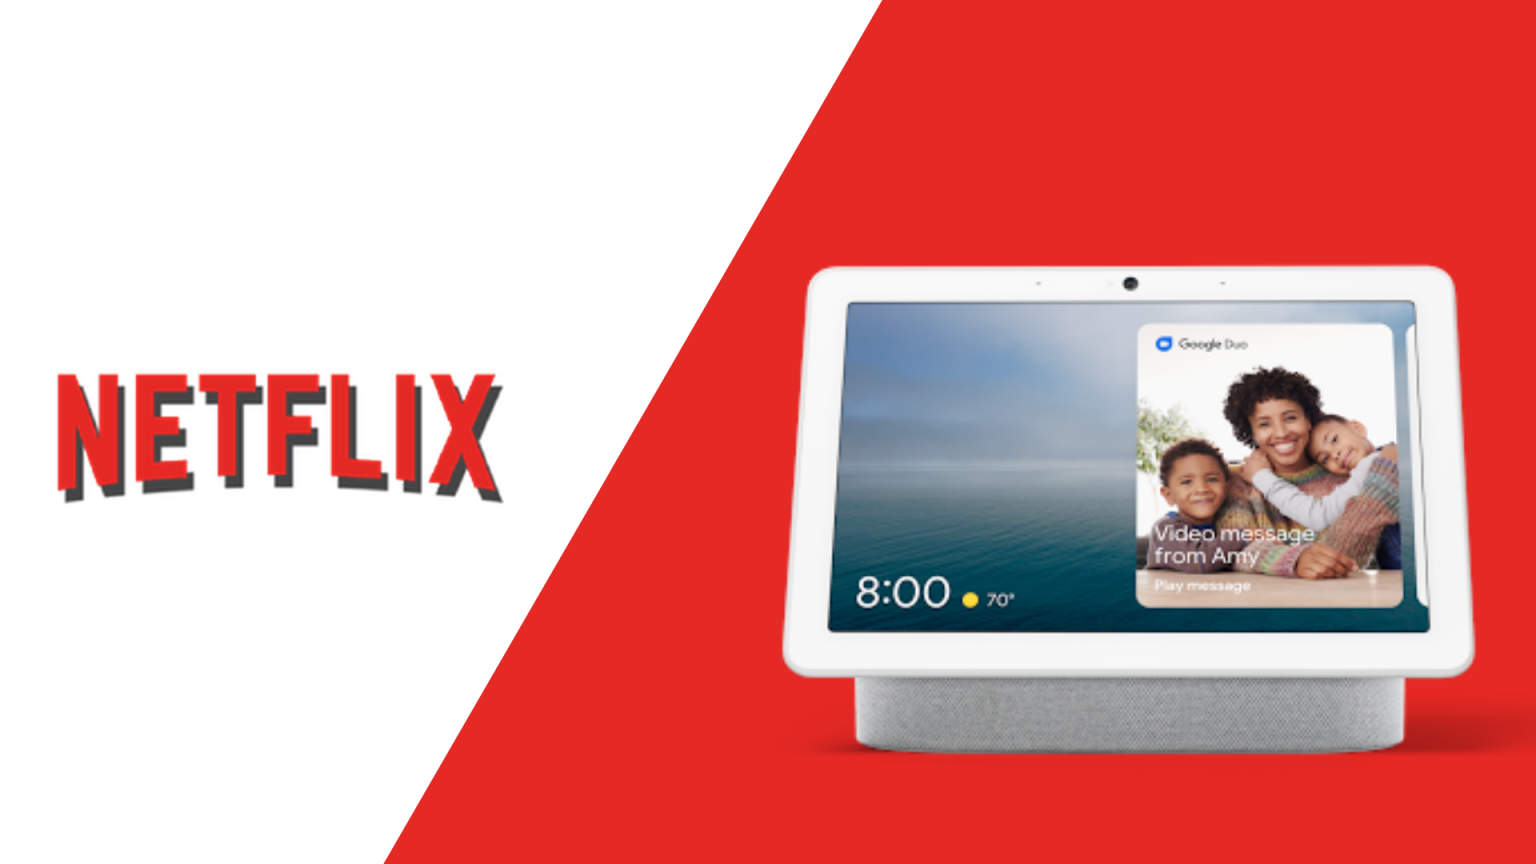 Netflix is now streaming on Google smart displays, NBCU's Peacock streaming service hits 1.5M app downloads in first 6 days And Other Top News